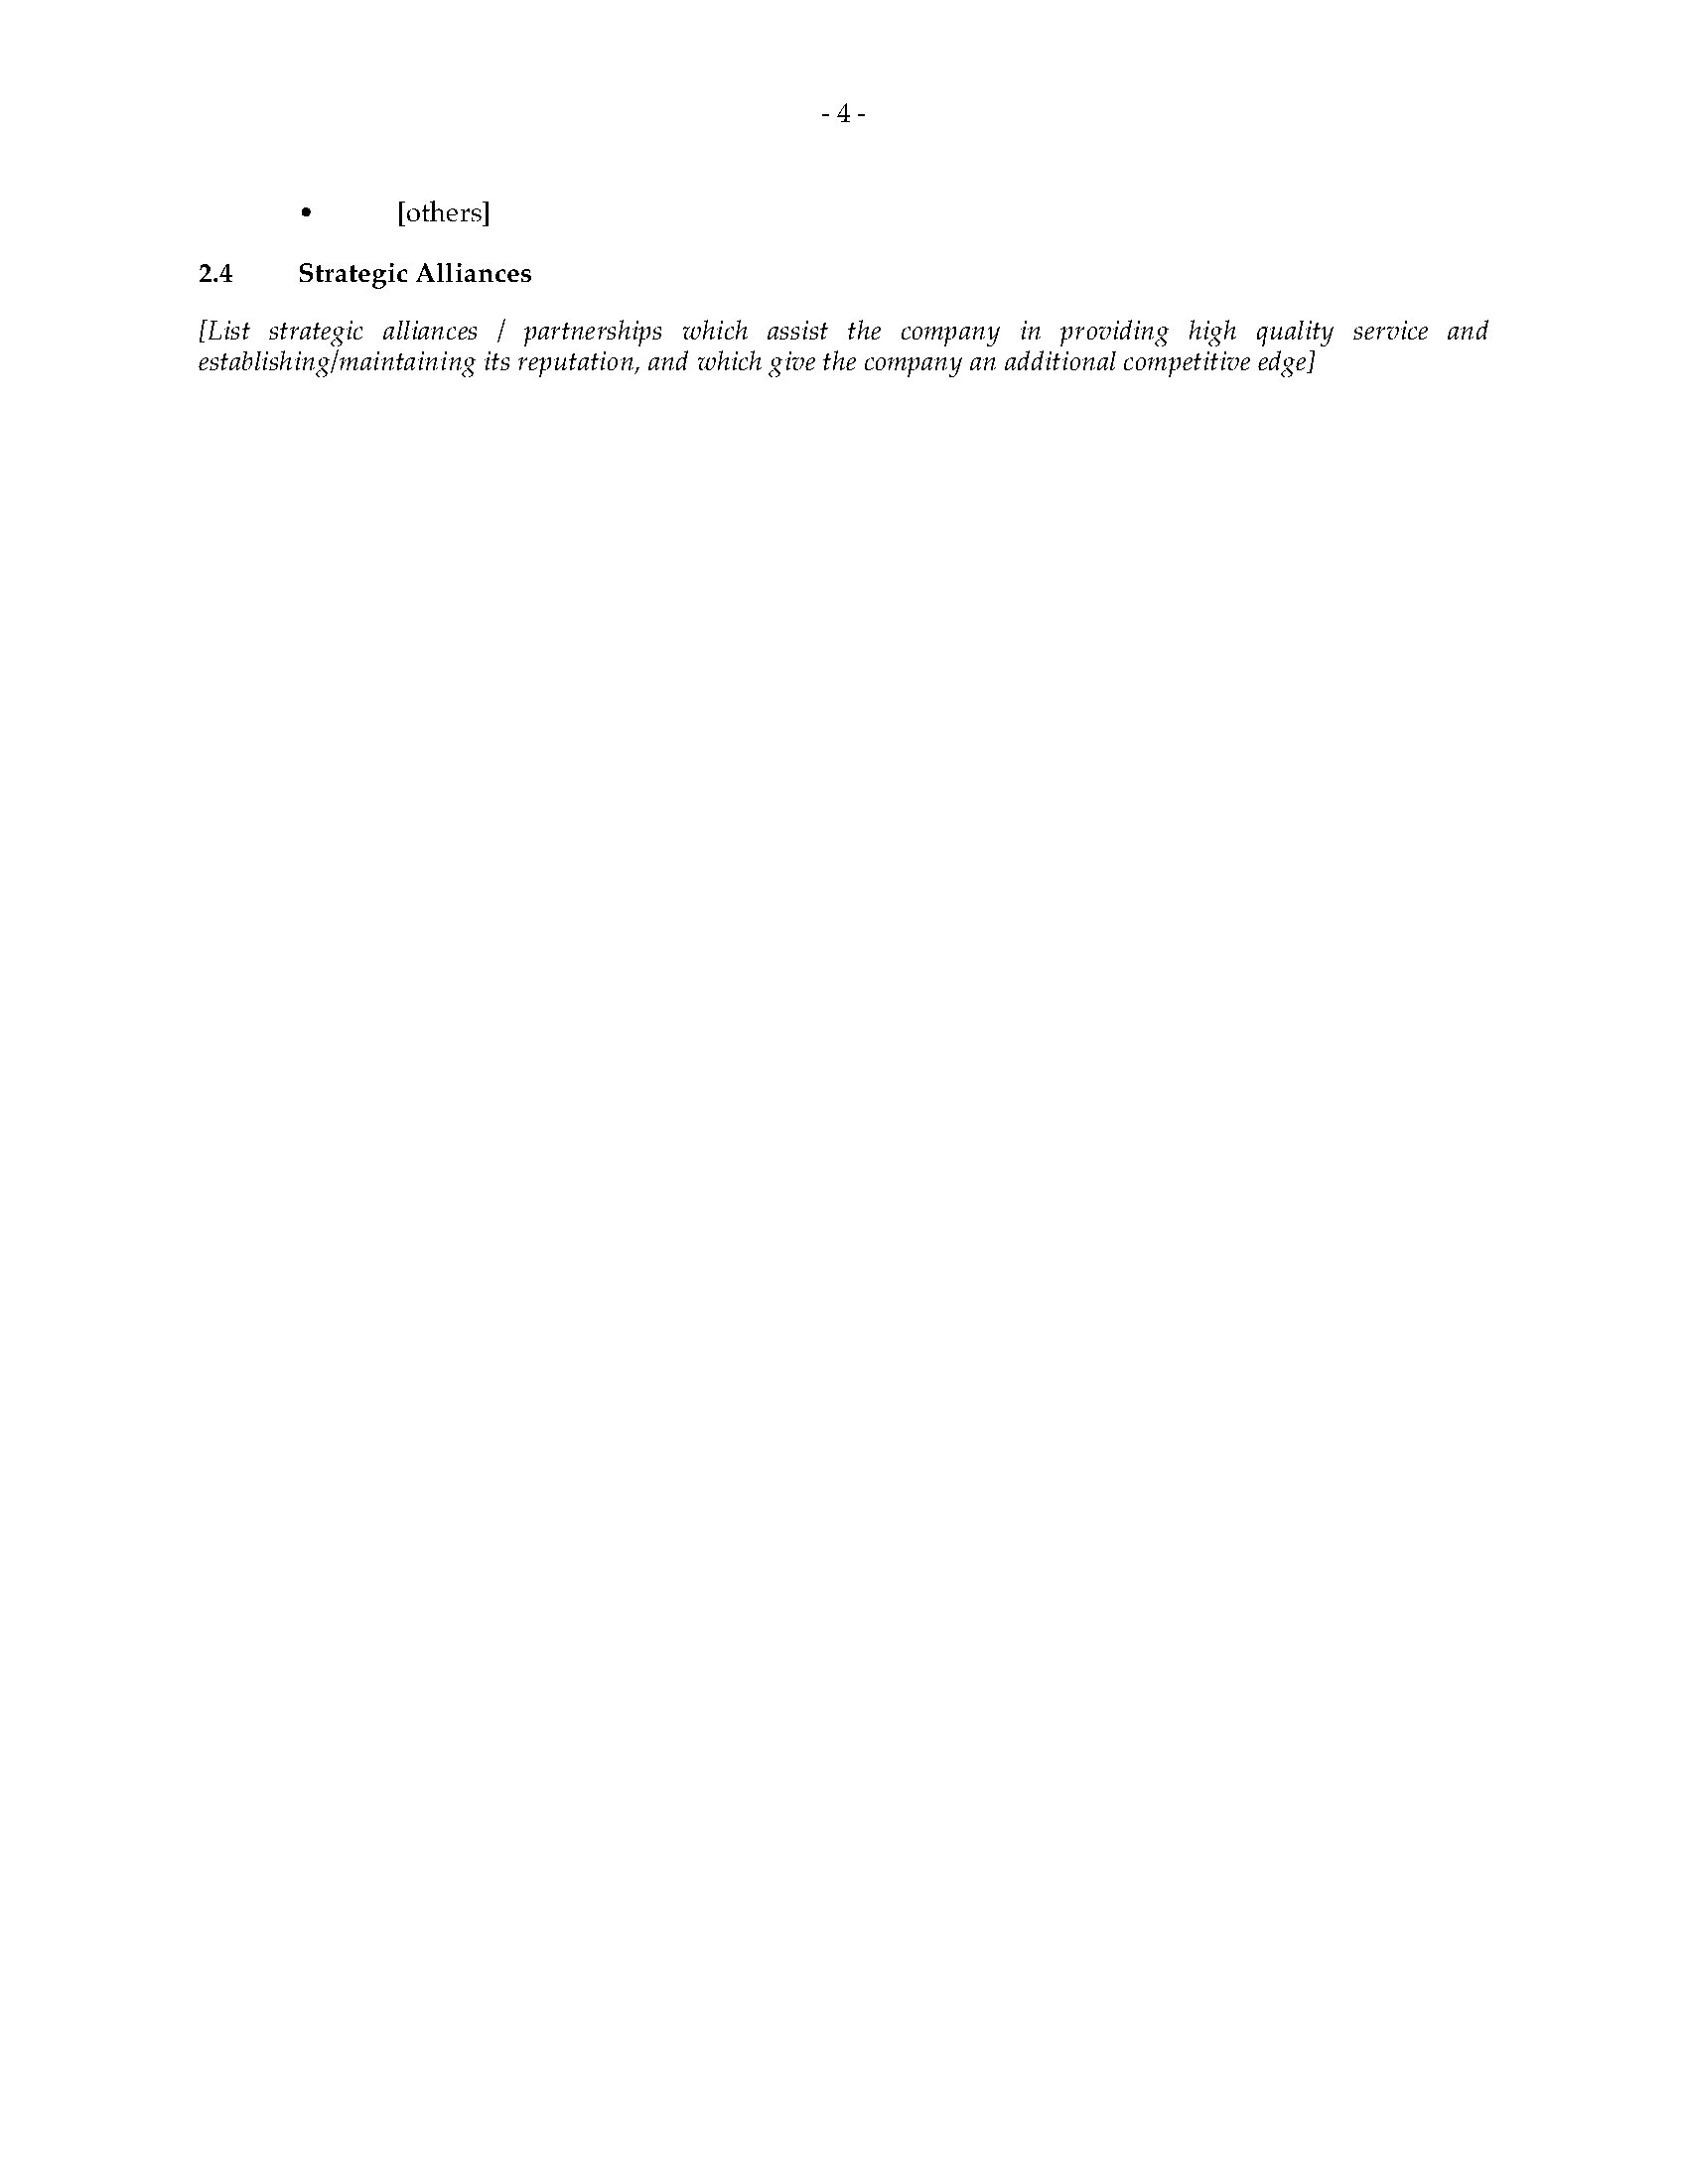 critical thinking chapter 3 quiz Chapter 3 critical thinking questions - free download as word doc (doc / docx), pdf file (pdf), text file (txt) or read online for free.